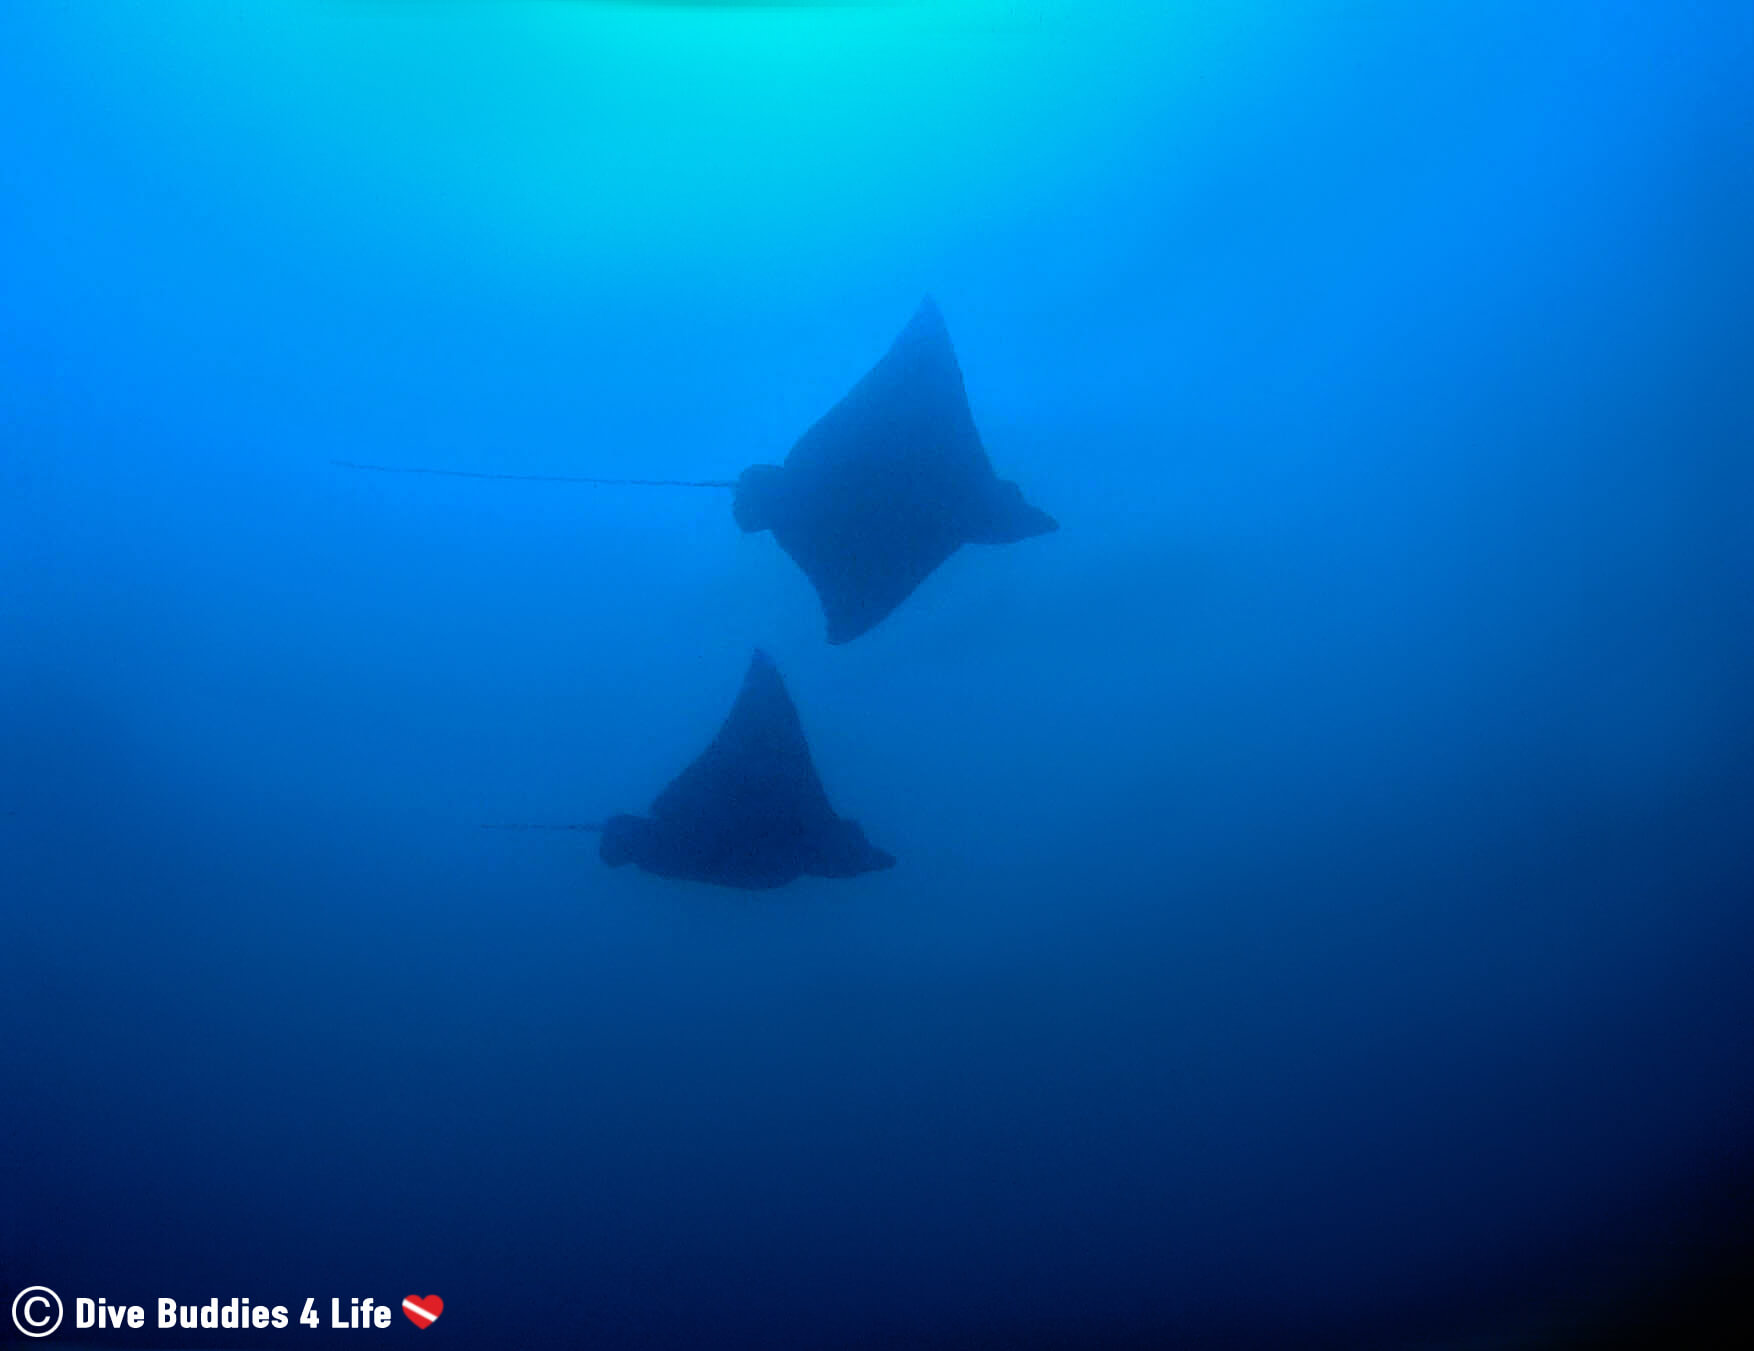 Two Eagle Rays Flying Side By Side In The Pacific Ocean Of Bat Island, Costa Rica